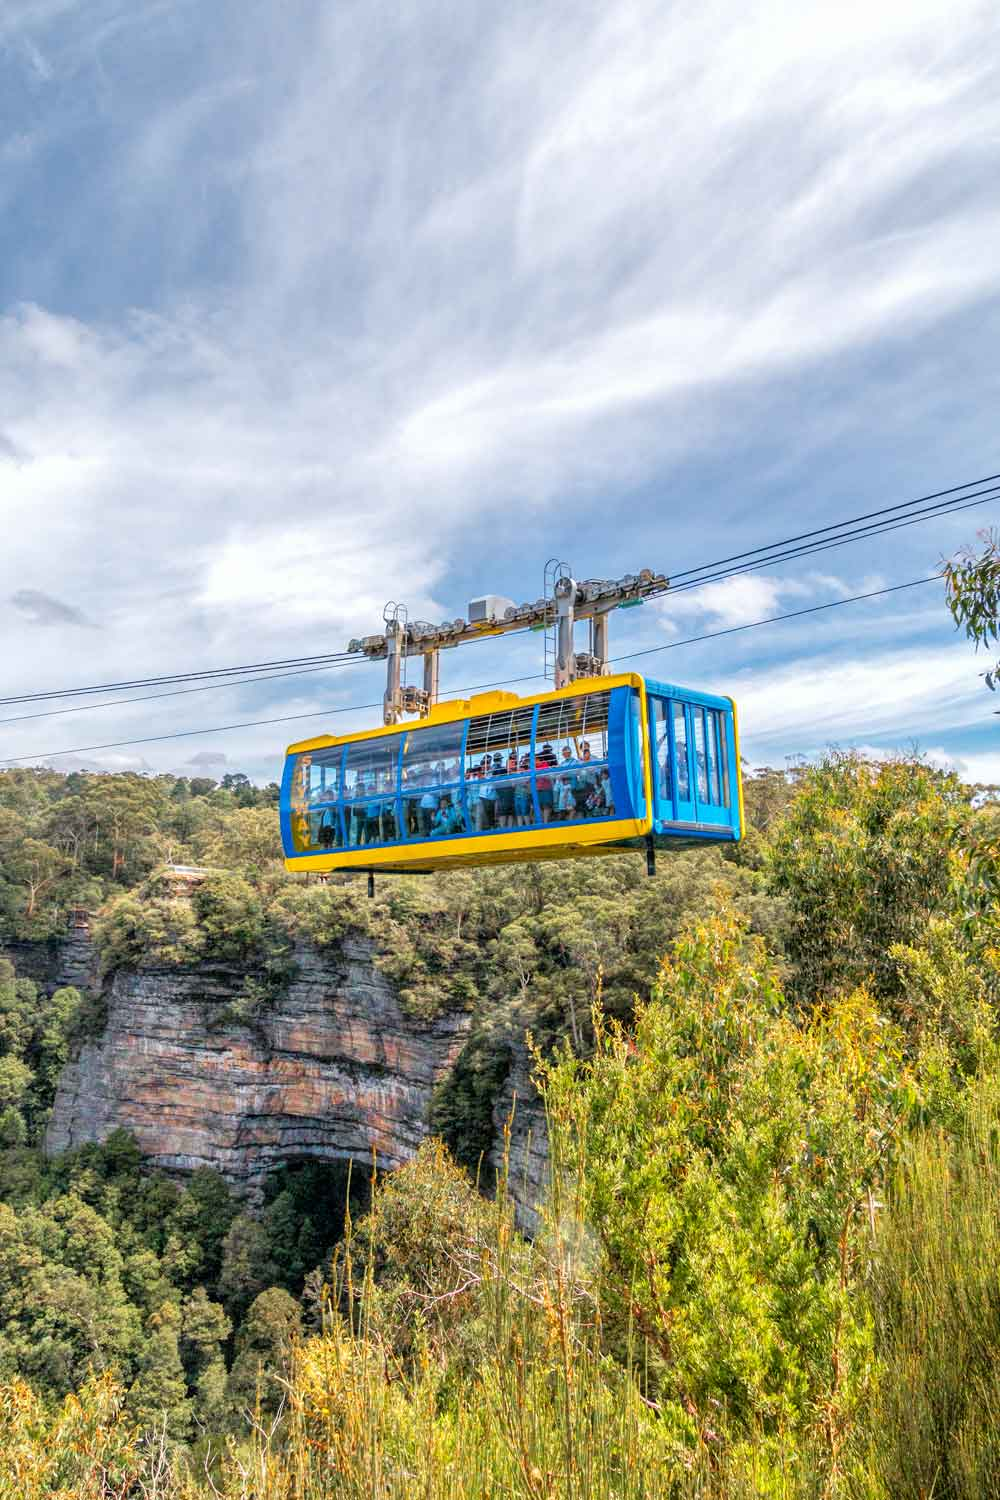 Skyrail at Scenic World in the Blue Mountains